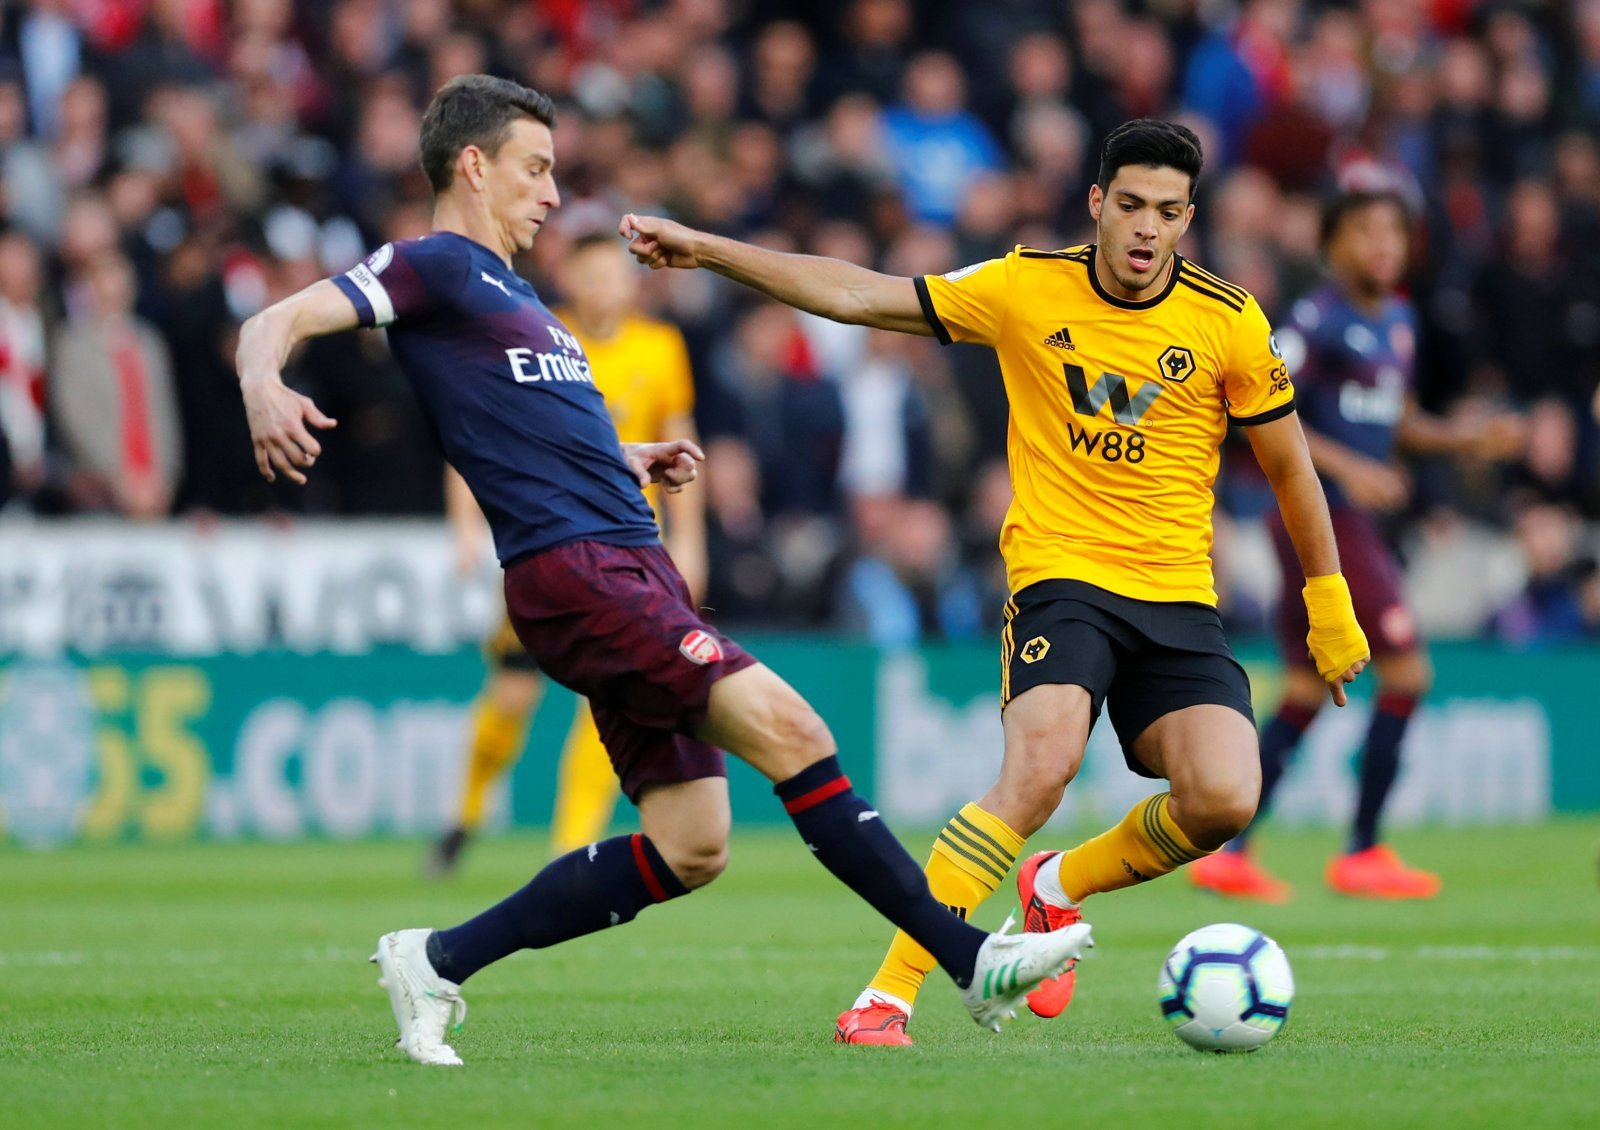 Wolves: Diogo Jota and Raul Jimenez set to return against Manchester United